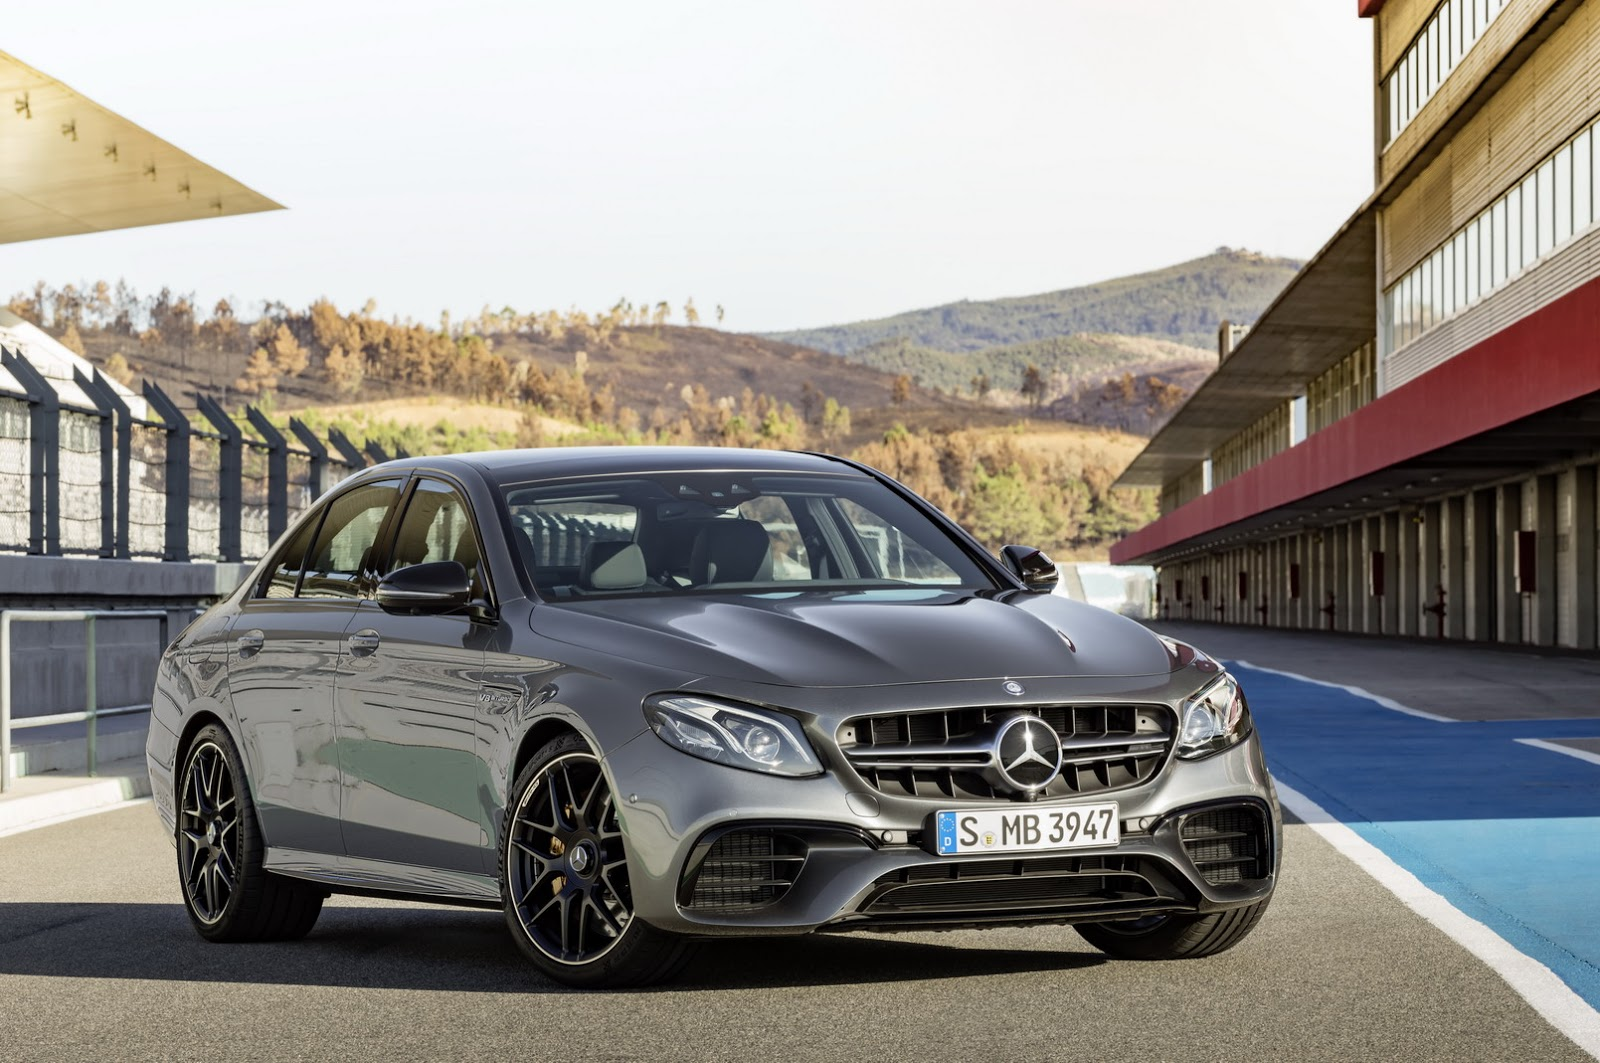 2018 mercedes amg e63 e63 s get up to 603hp hit 62mph 100km h as low as 3 4 sec. Black Bedroom Furniture Sets. Home Design Ideas